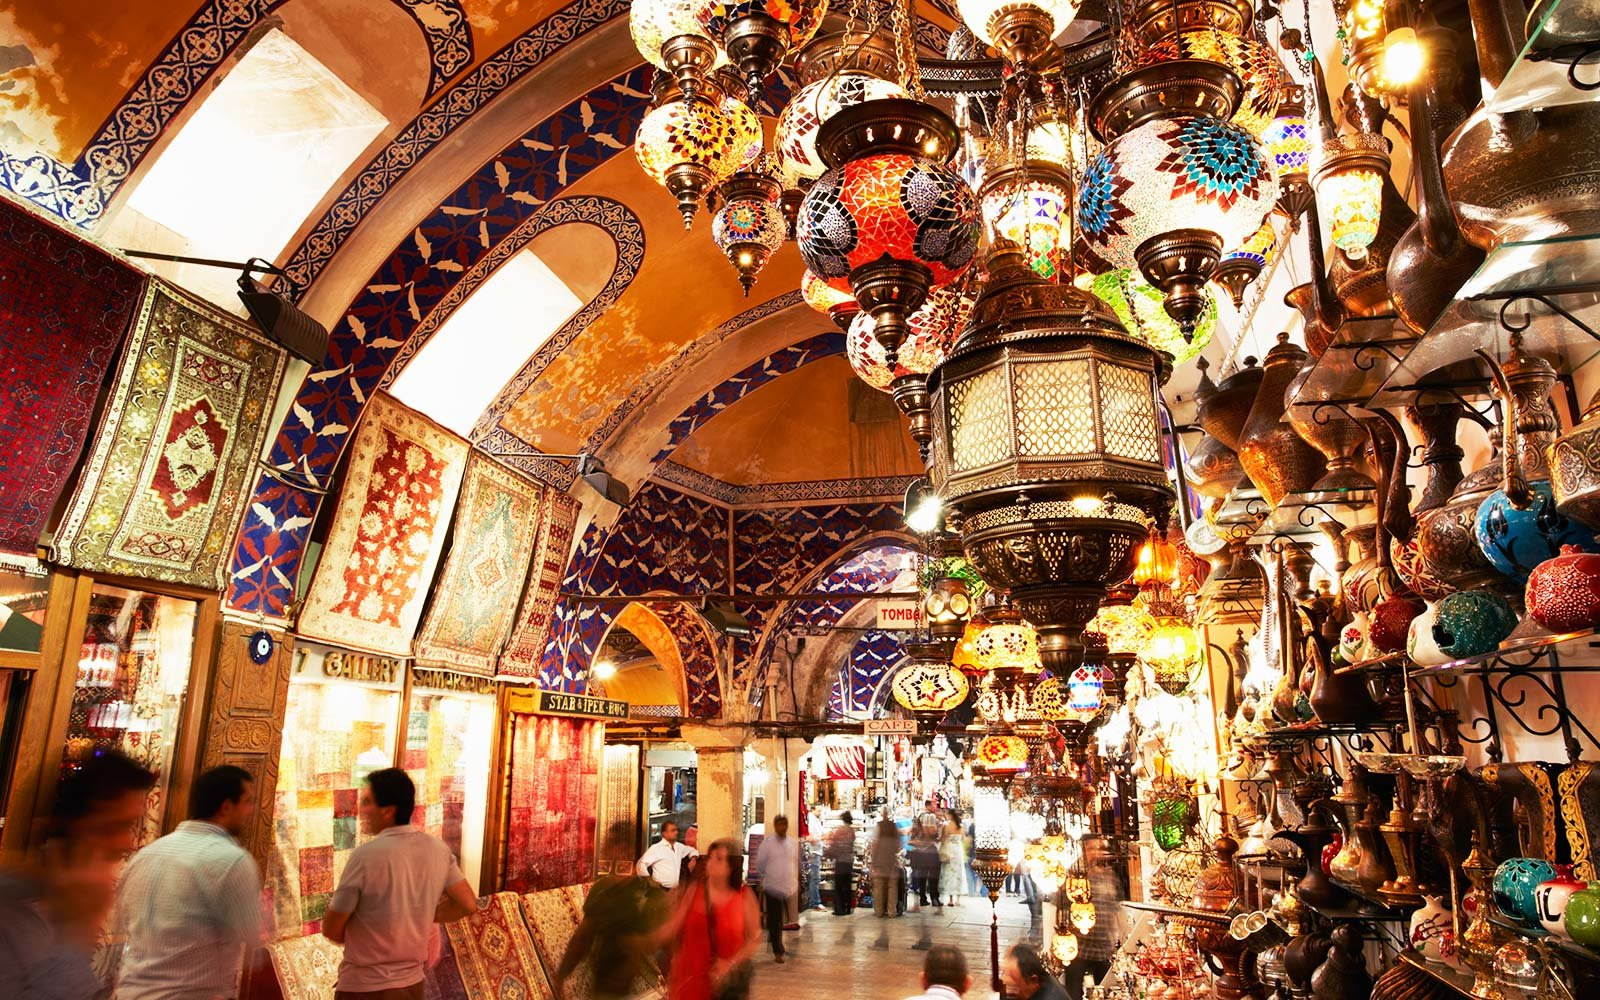 How to Make Your House Look Like Istanbul